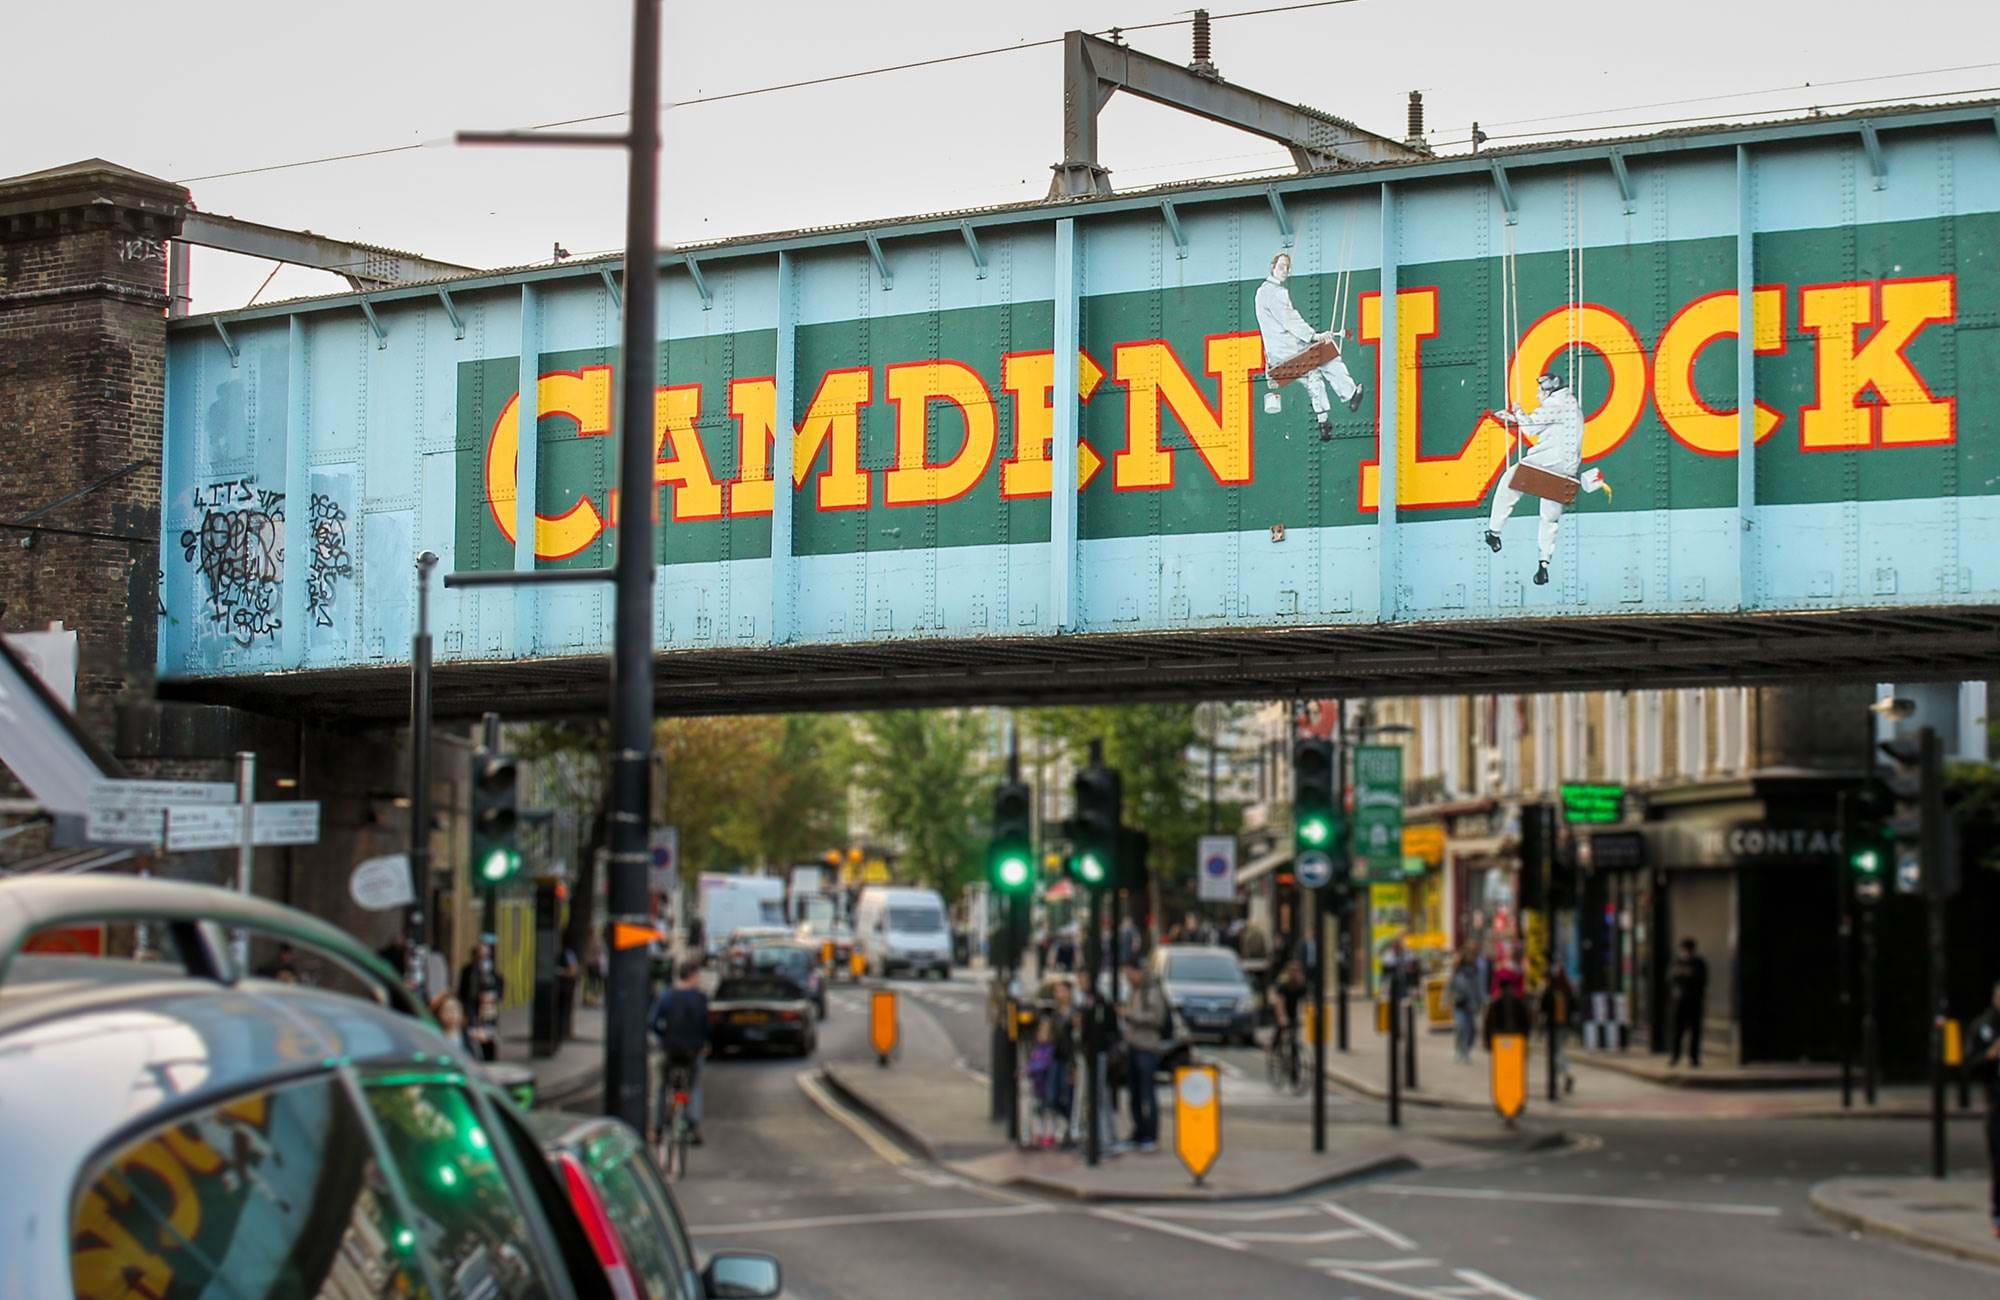 camden lock i london